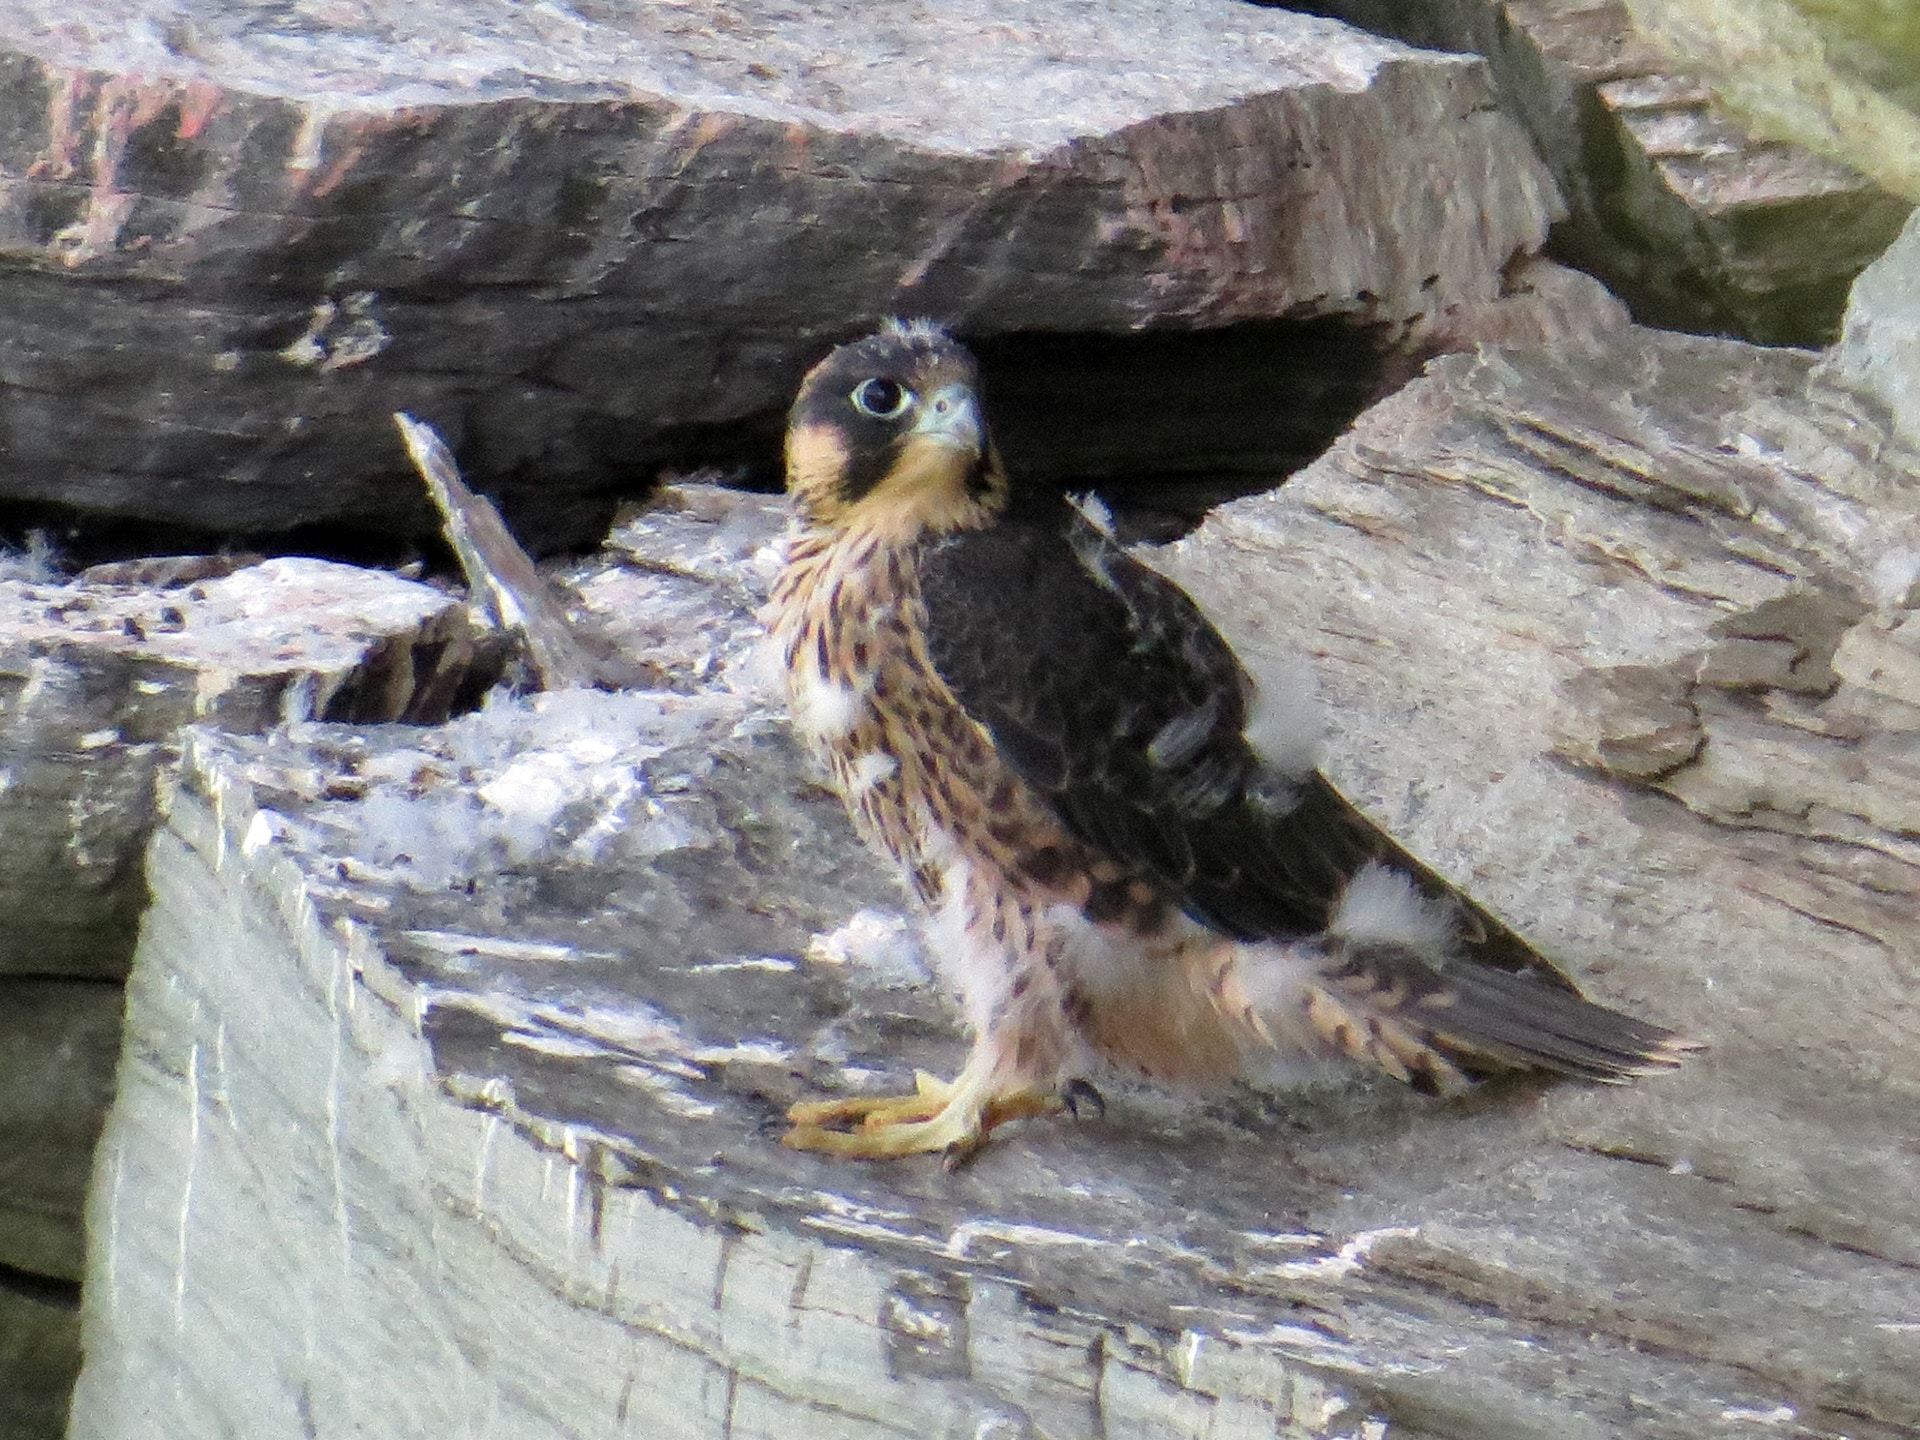 The Nest Best Thing: Grandfather Mountain celebrates peregrine falcon nesting